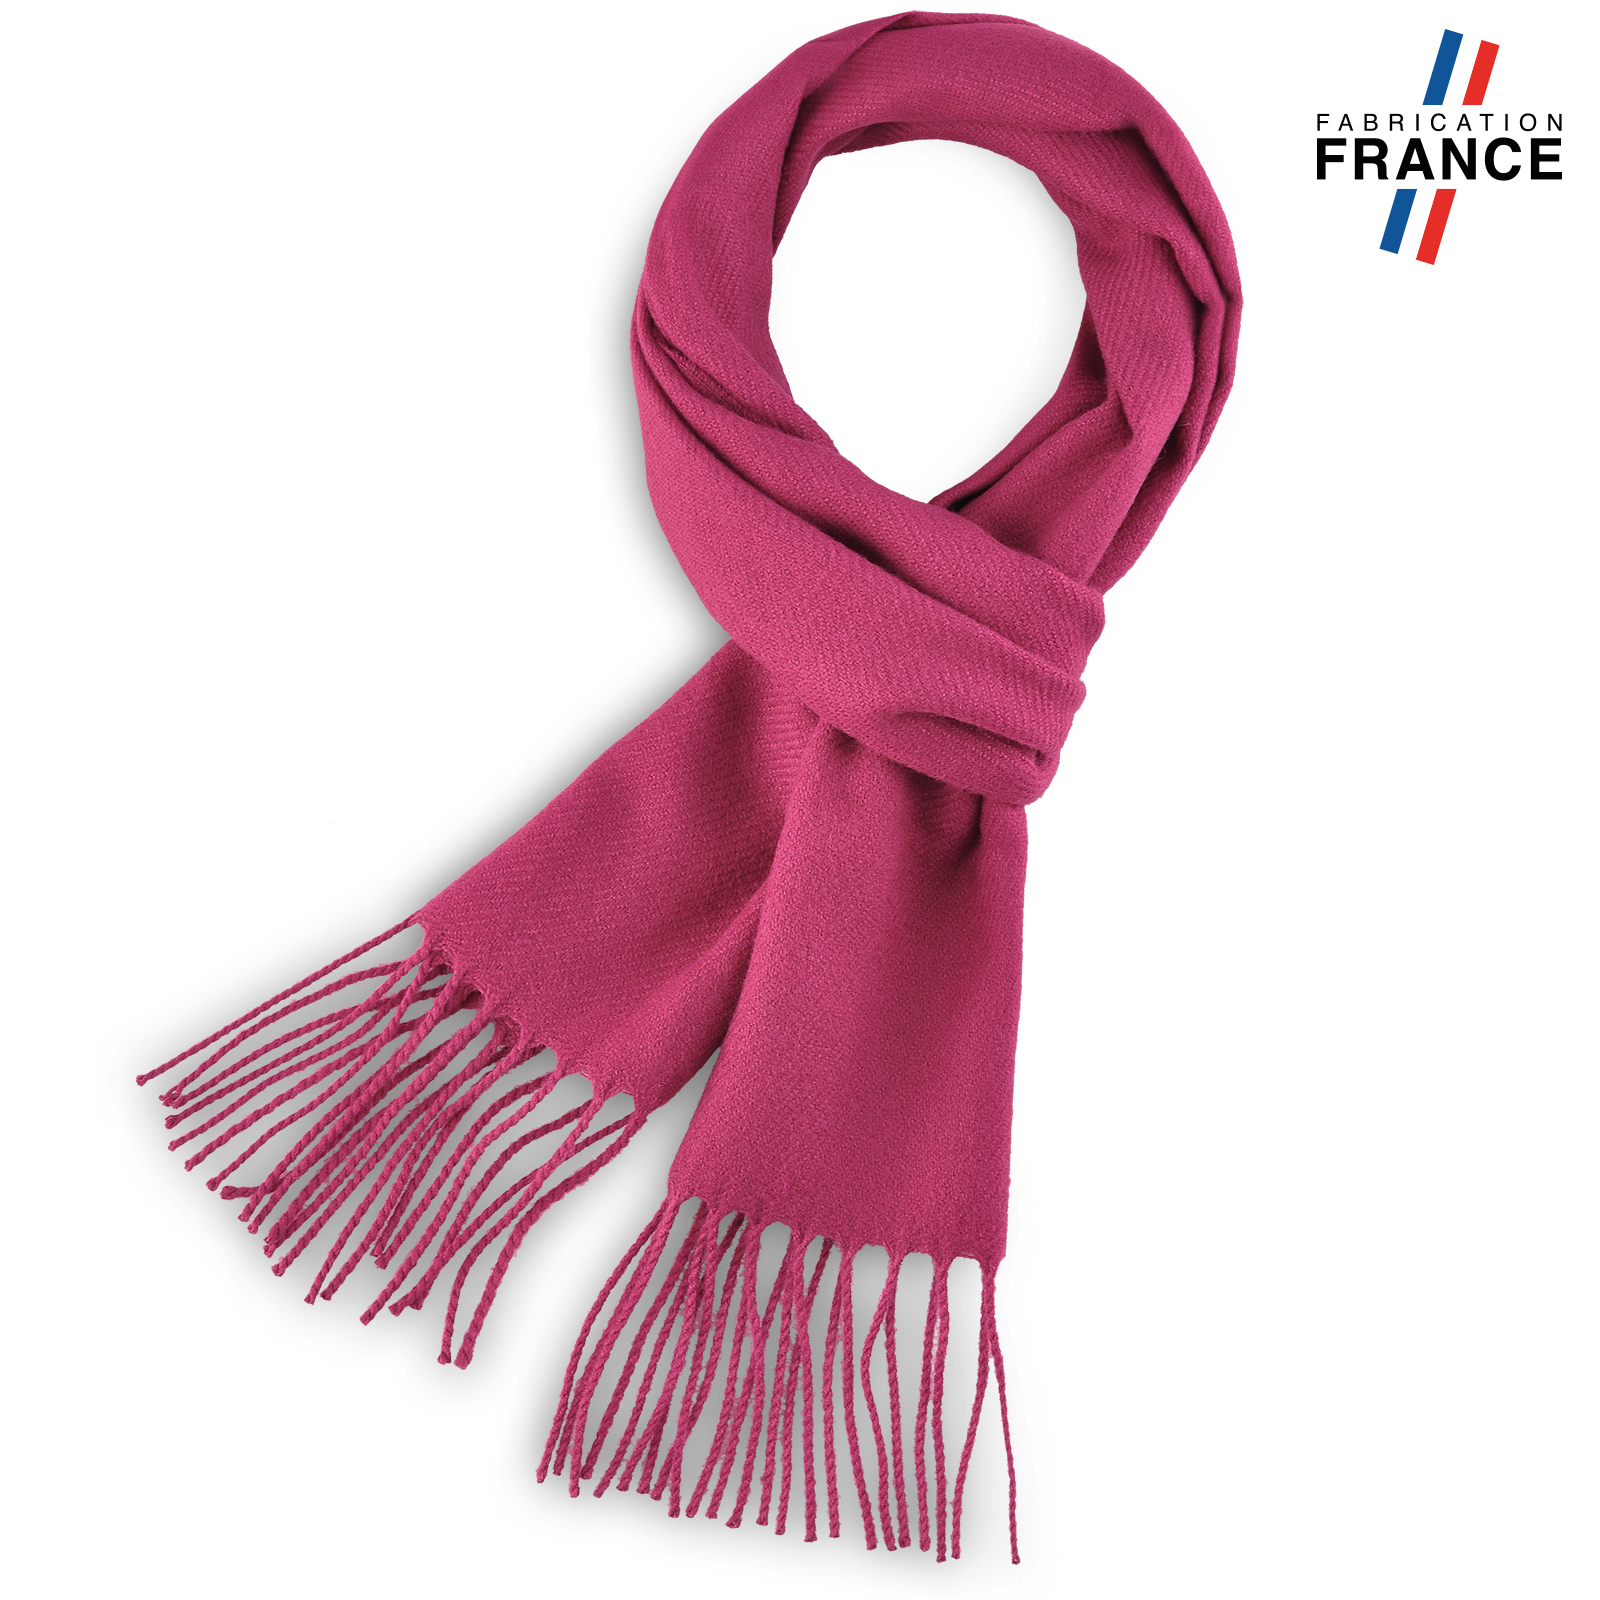 AT-03240-F16-echarpe-a-franges-rose-fuchsia-fabrication-francaise